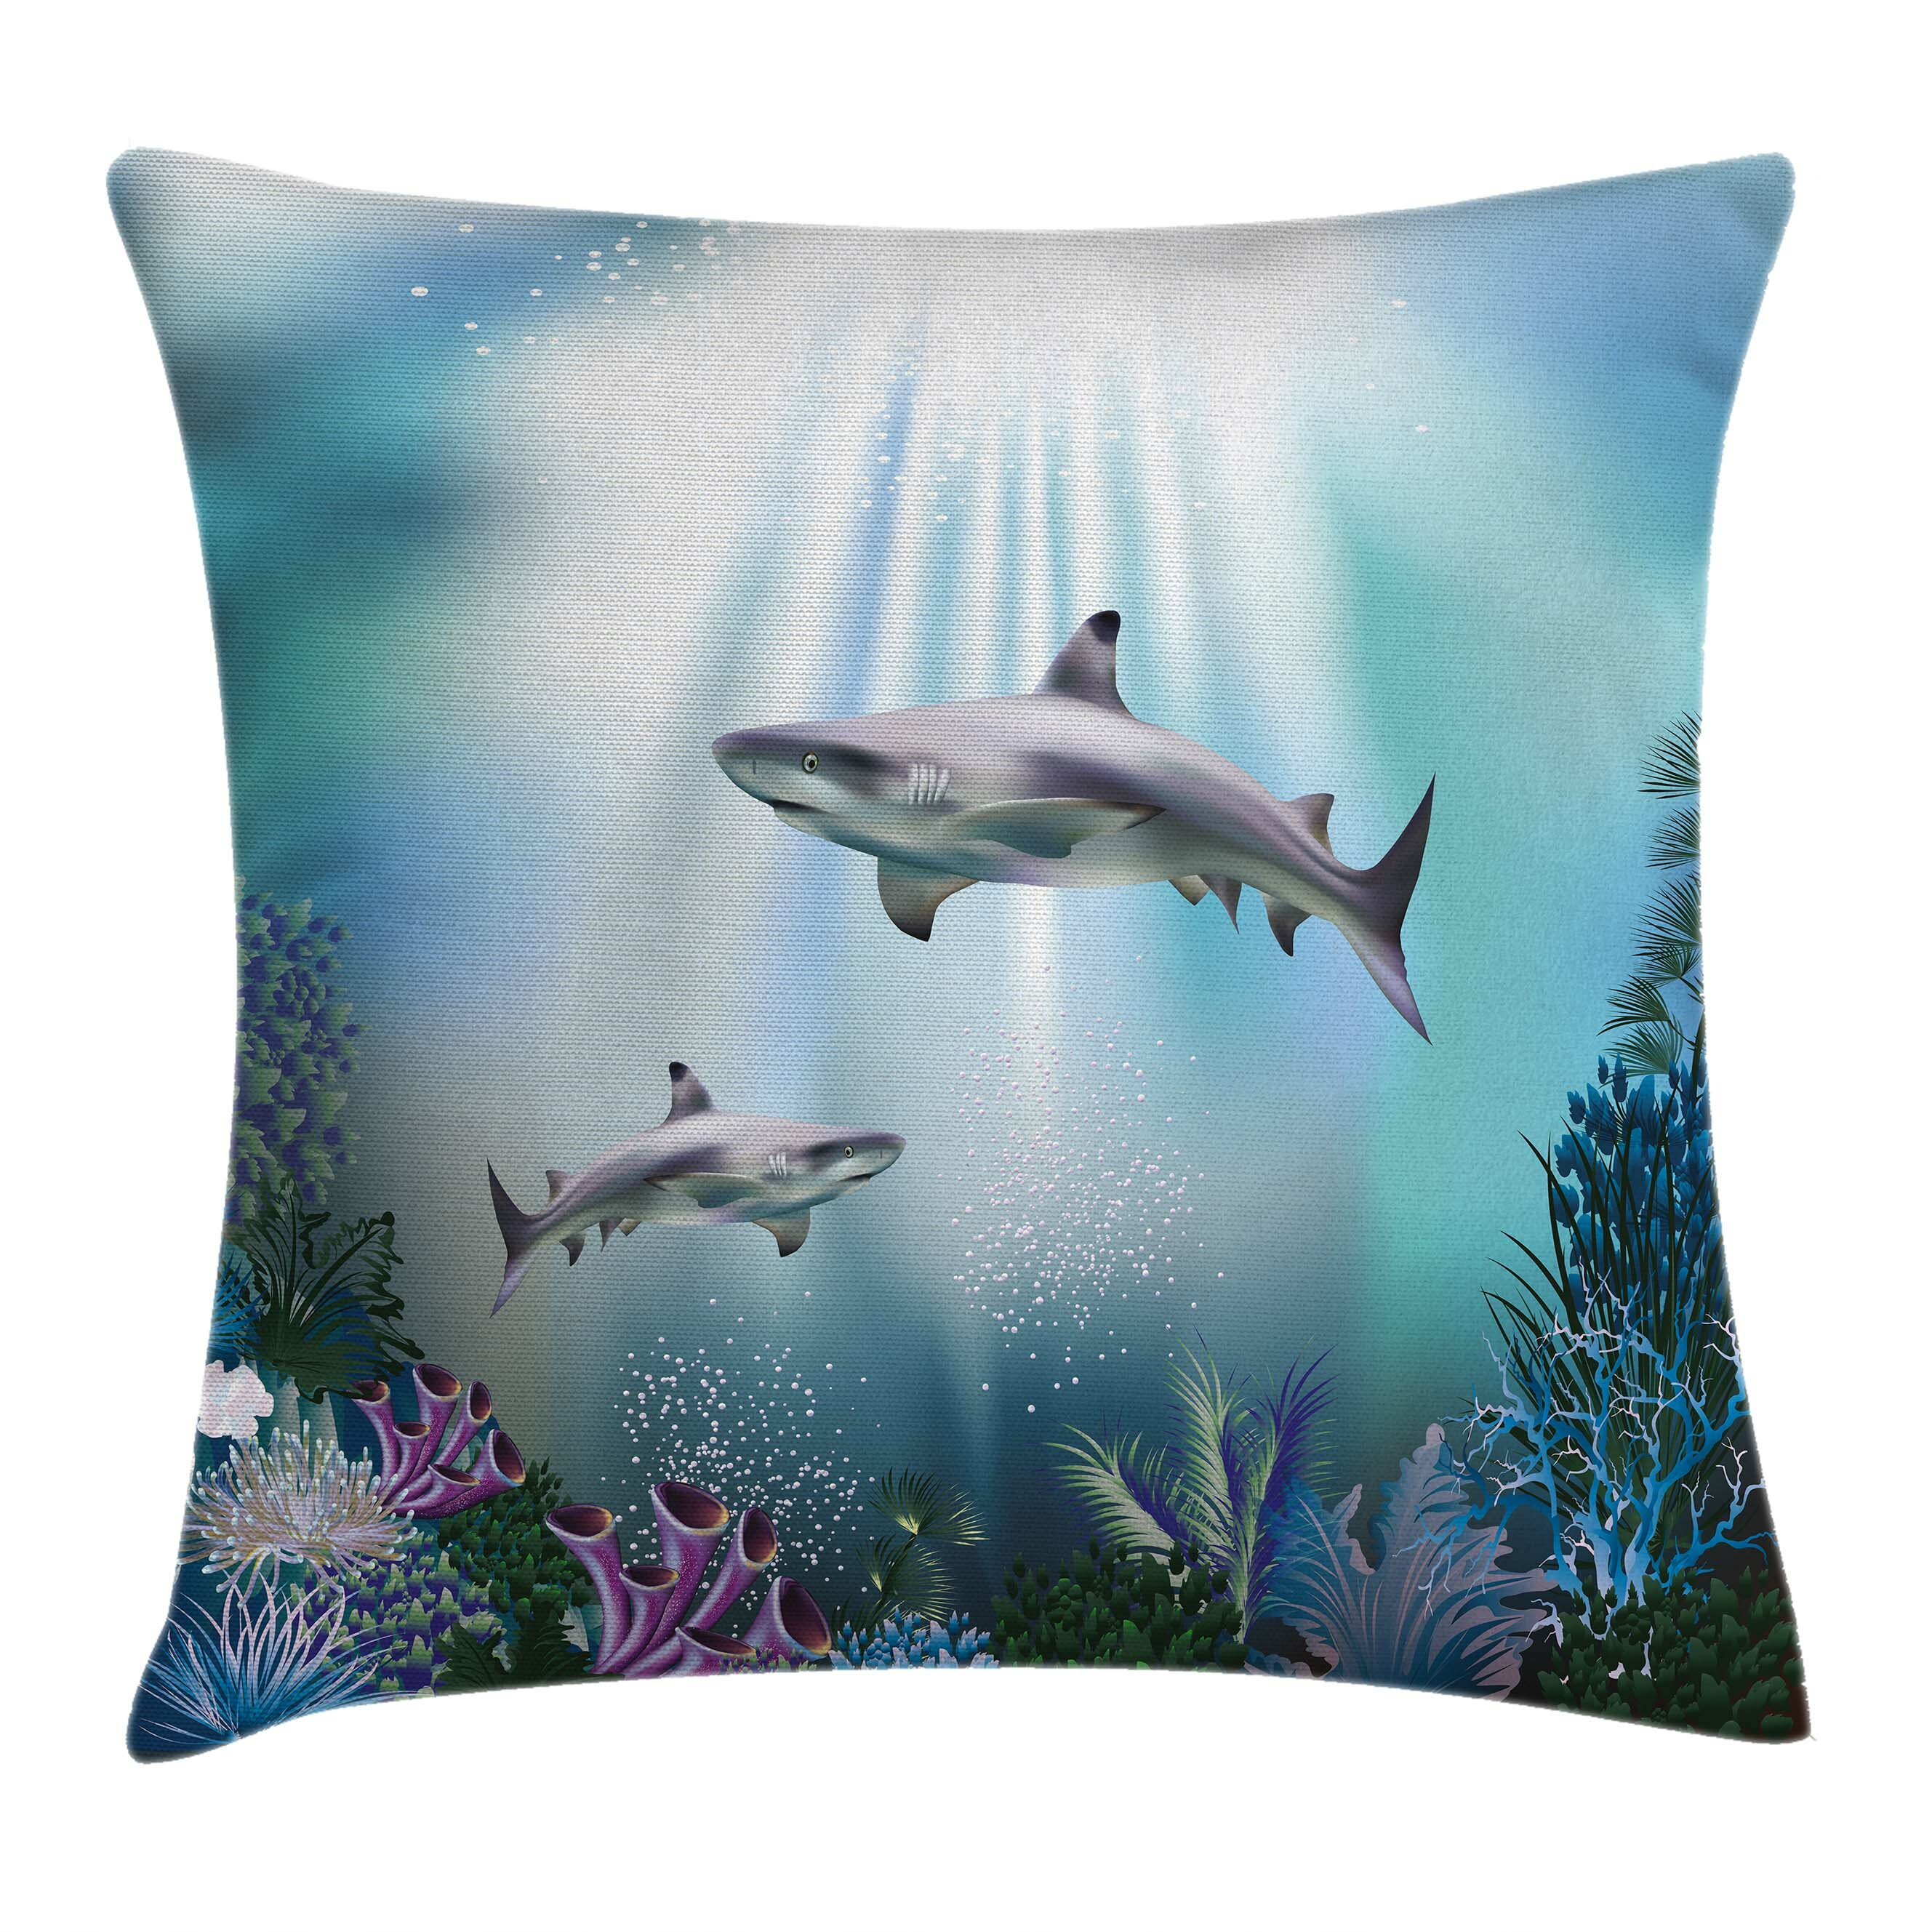 20b8aa53f05d Ambesonne Underwater Sharks Coral Aquatic Pillow Cover